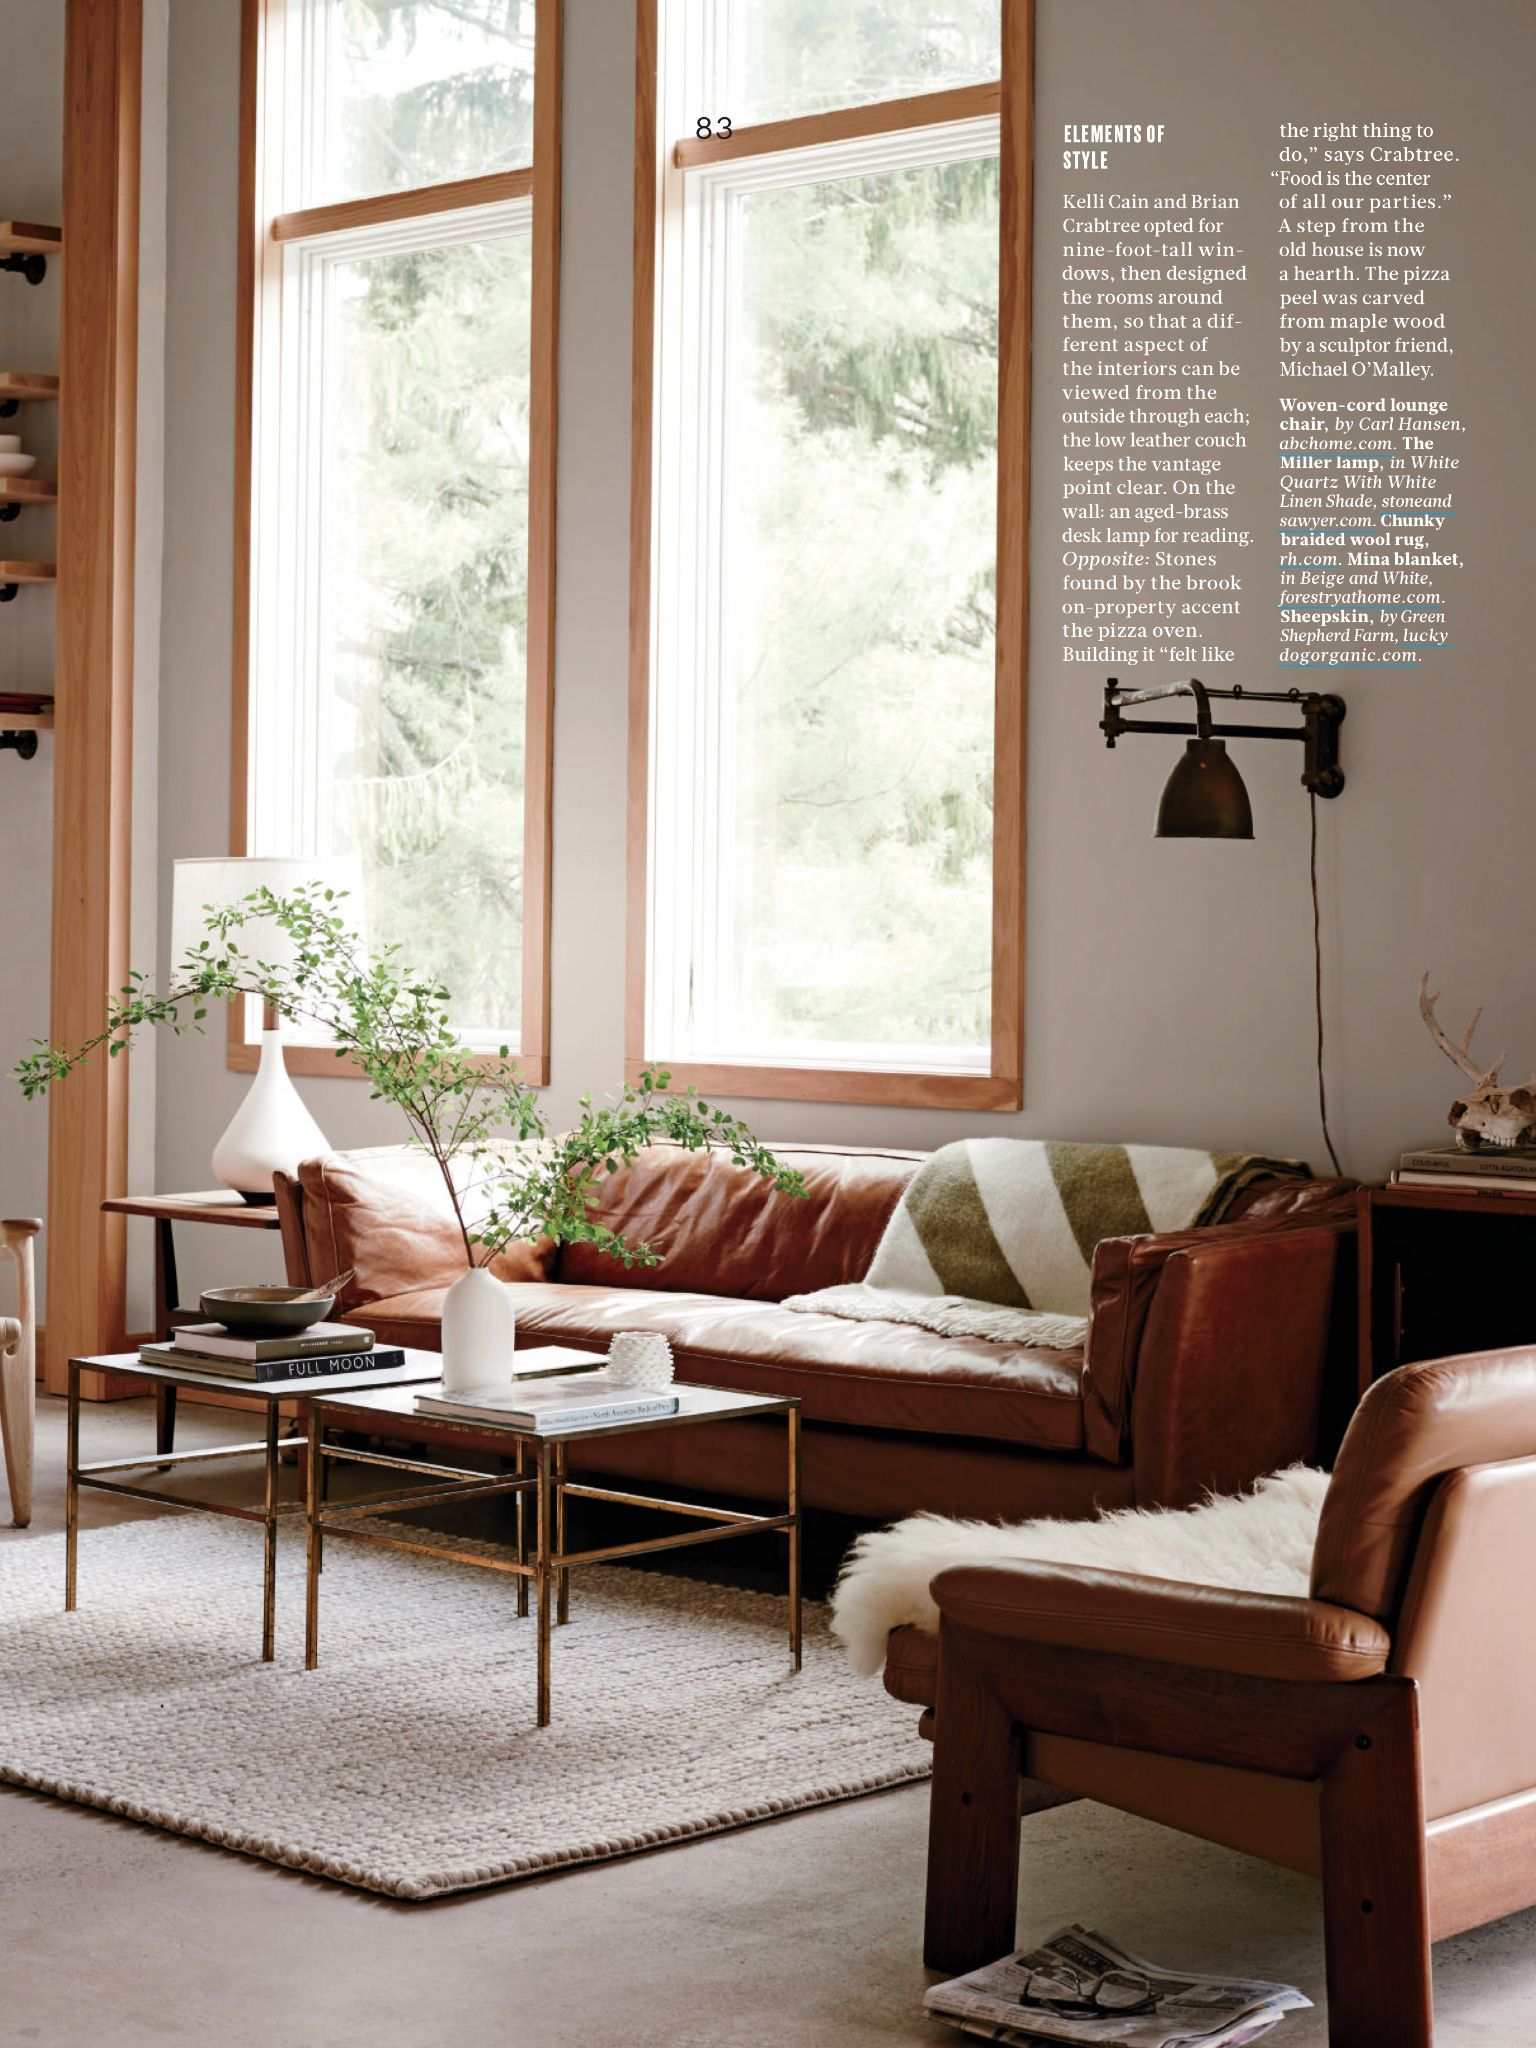 Living room of 100-year-old farmhouse renovated by Kelli ...